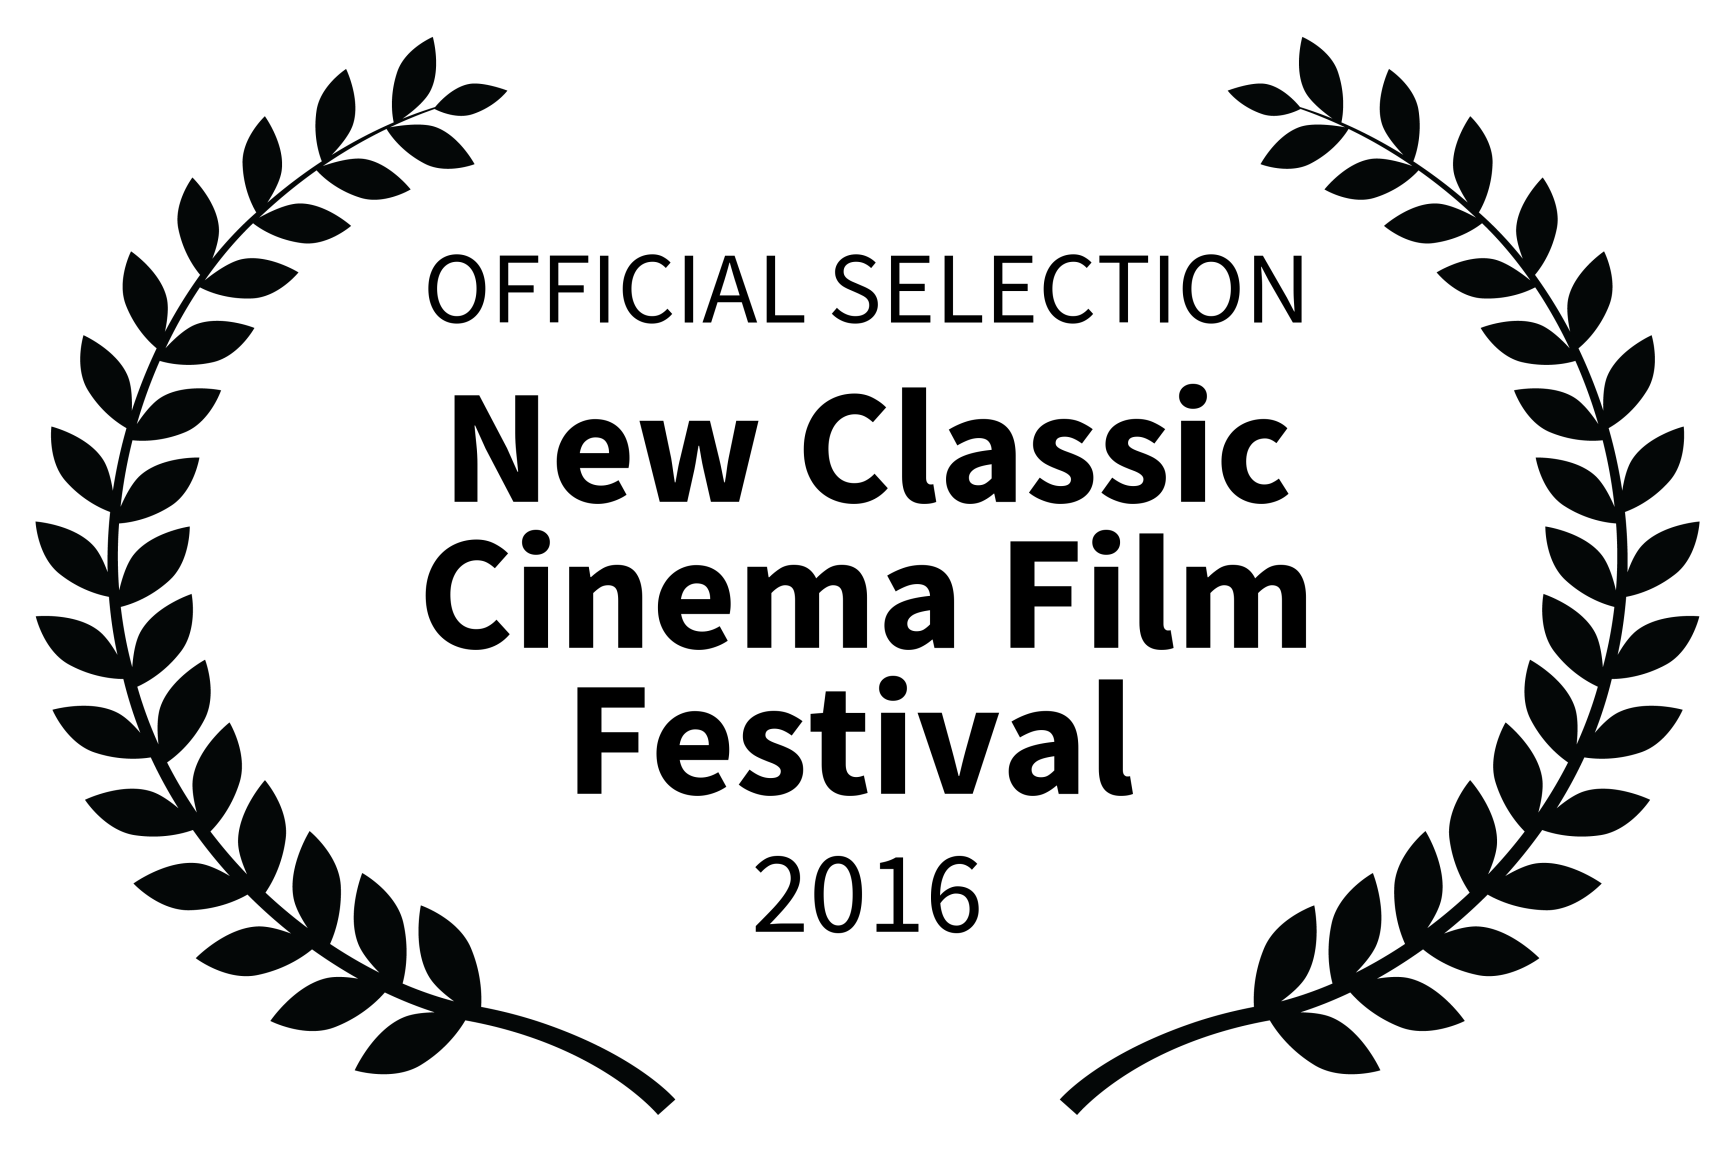 OFFICIAL SELECTION - New Classic Cinema